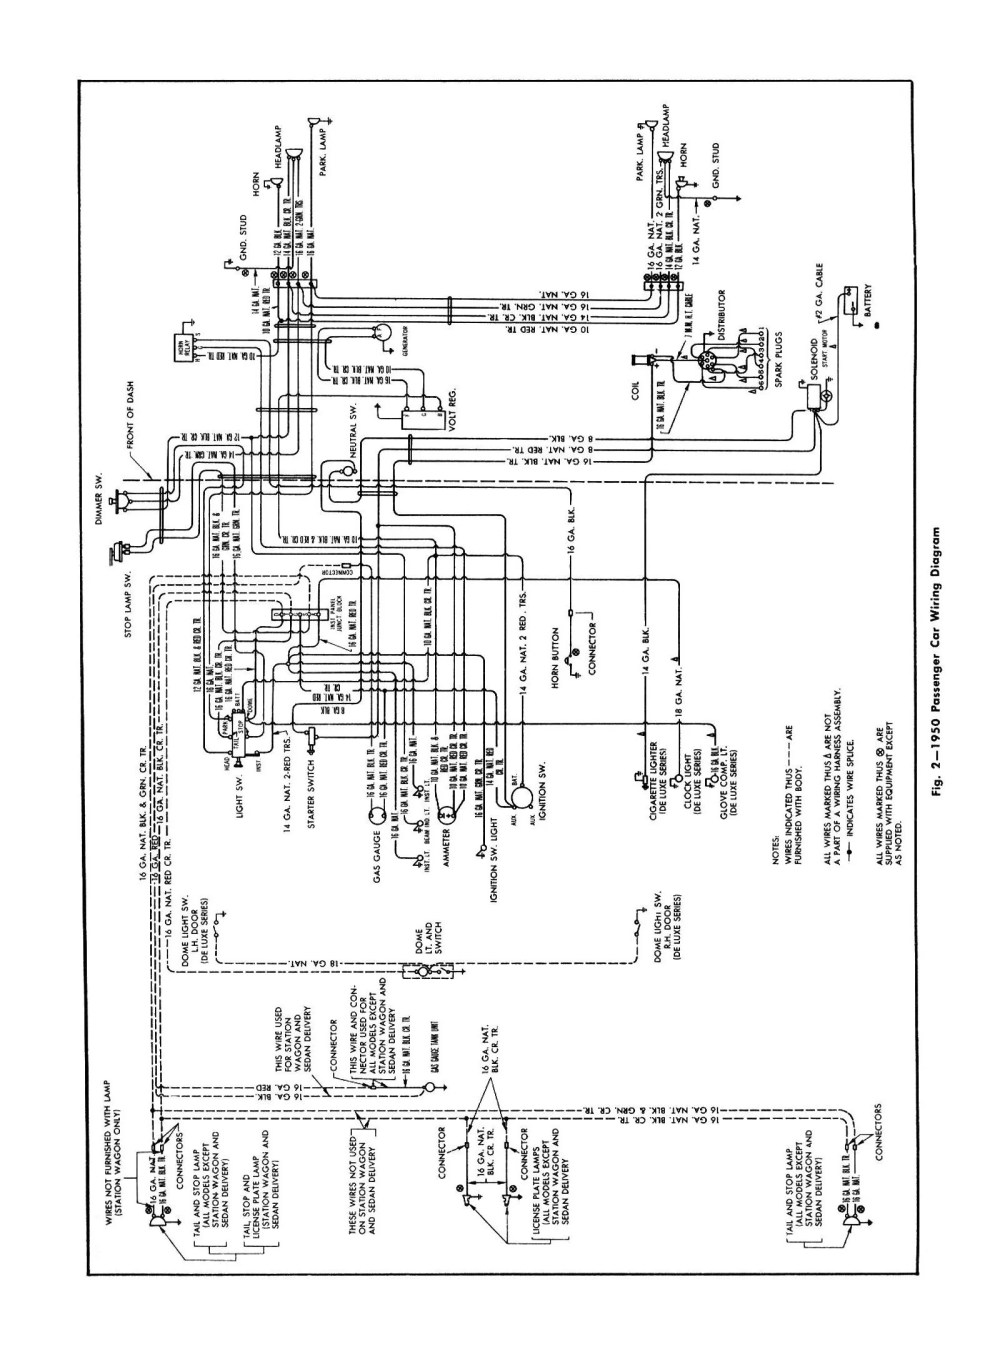 medium resolution of chevy wiring diagrams 1957 chevy wiring diagram 1950 car general wiring